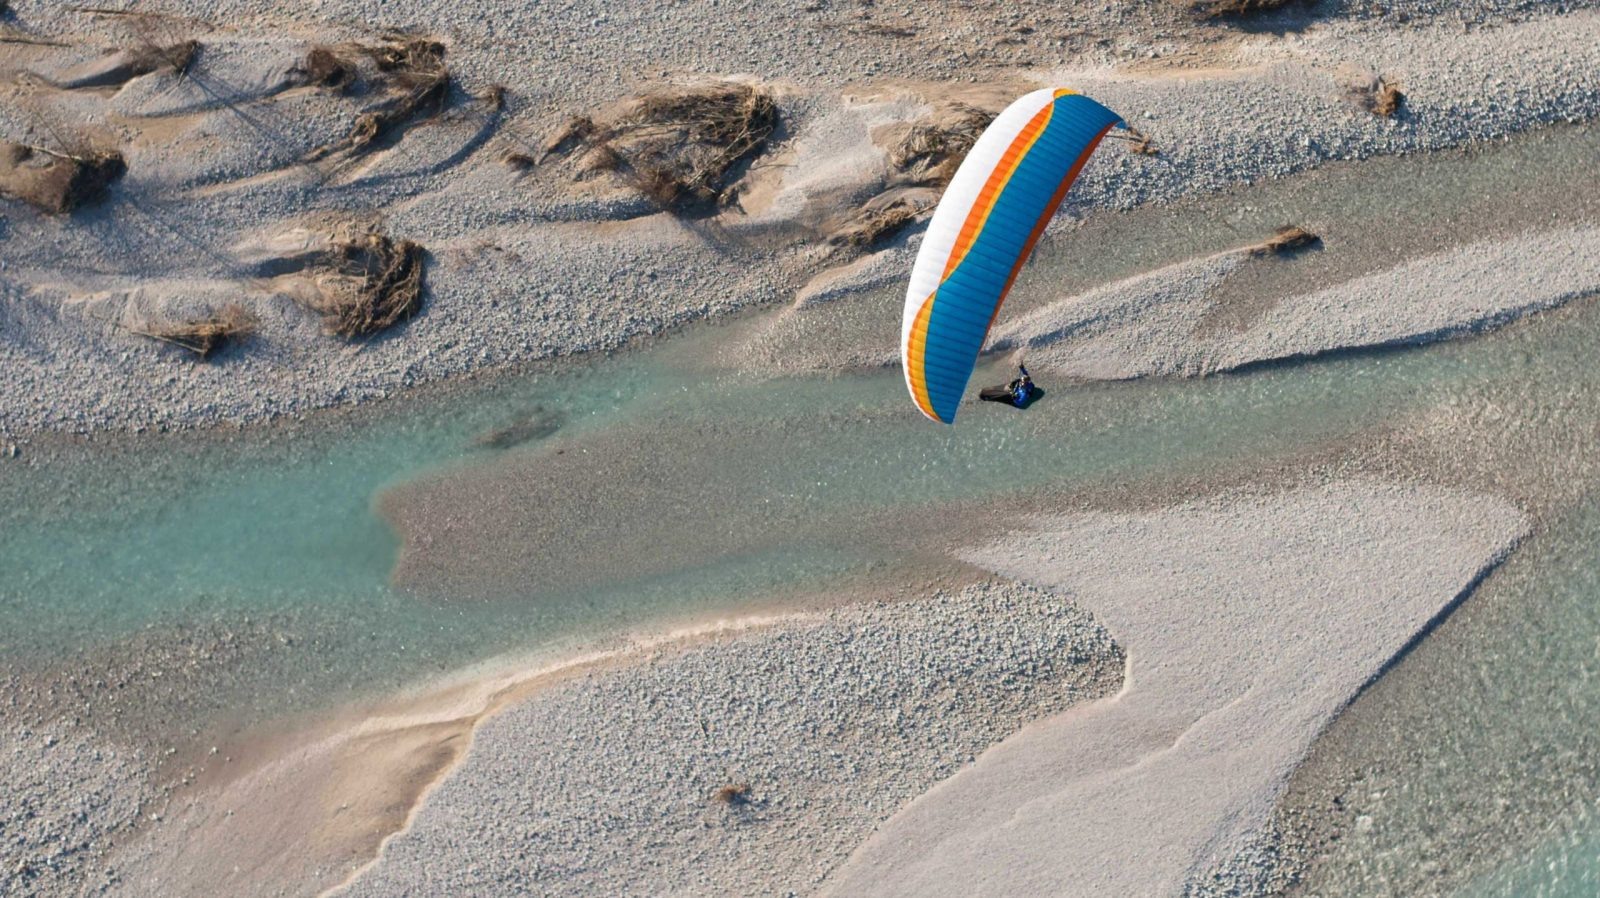 AirDesign Rise 4 ocean over a river near Meduno, Italy